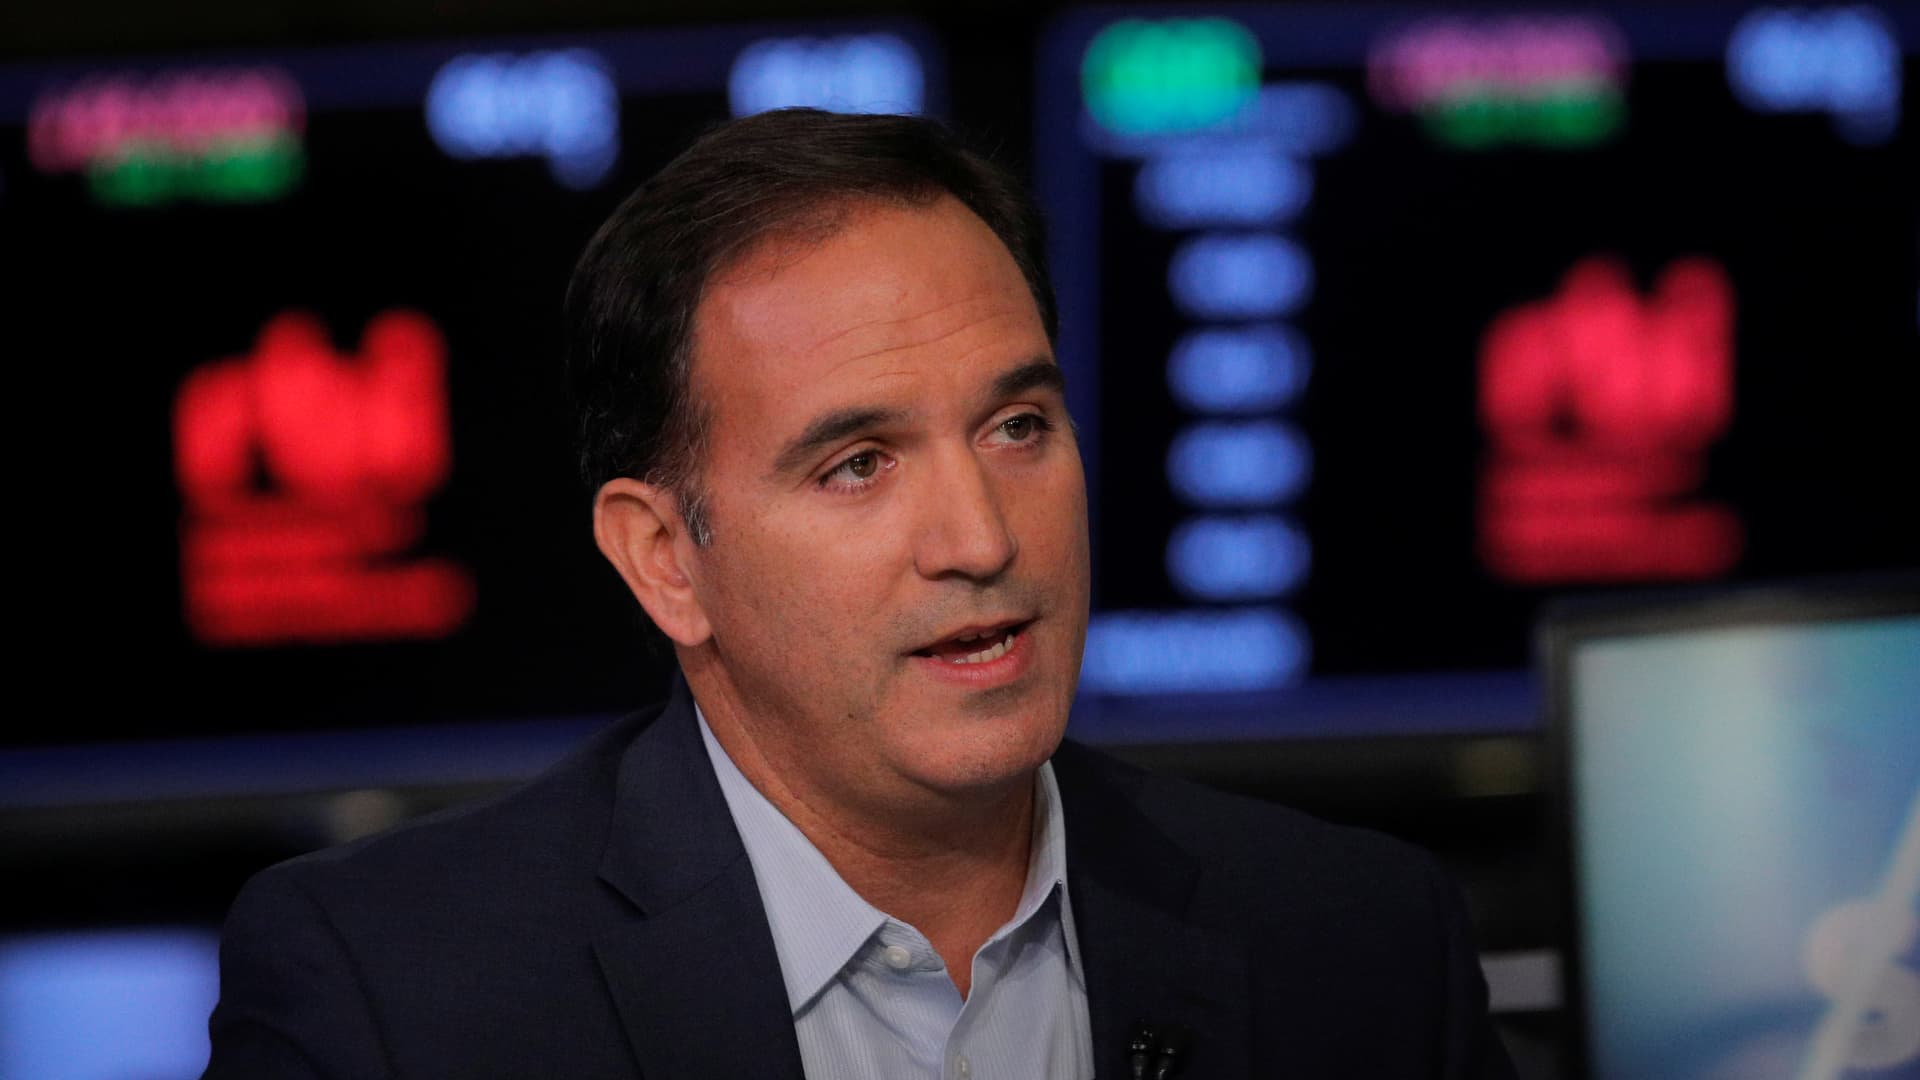 Jose Cil, CEO of Restaurant Brands International, speaks during an interview with CNBC on the floor at the New York Stock Exchange in New York, U.S., November 6, 2019.